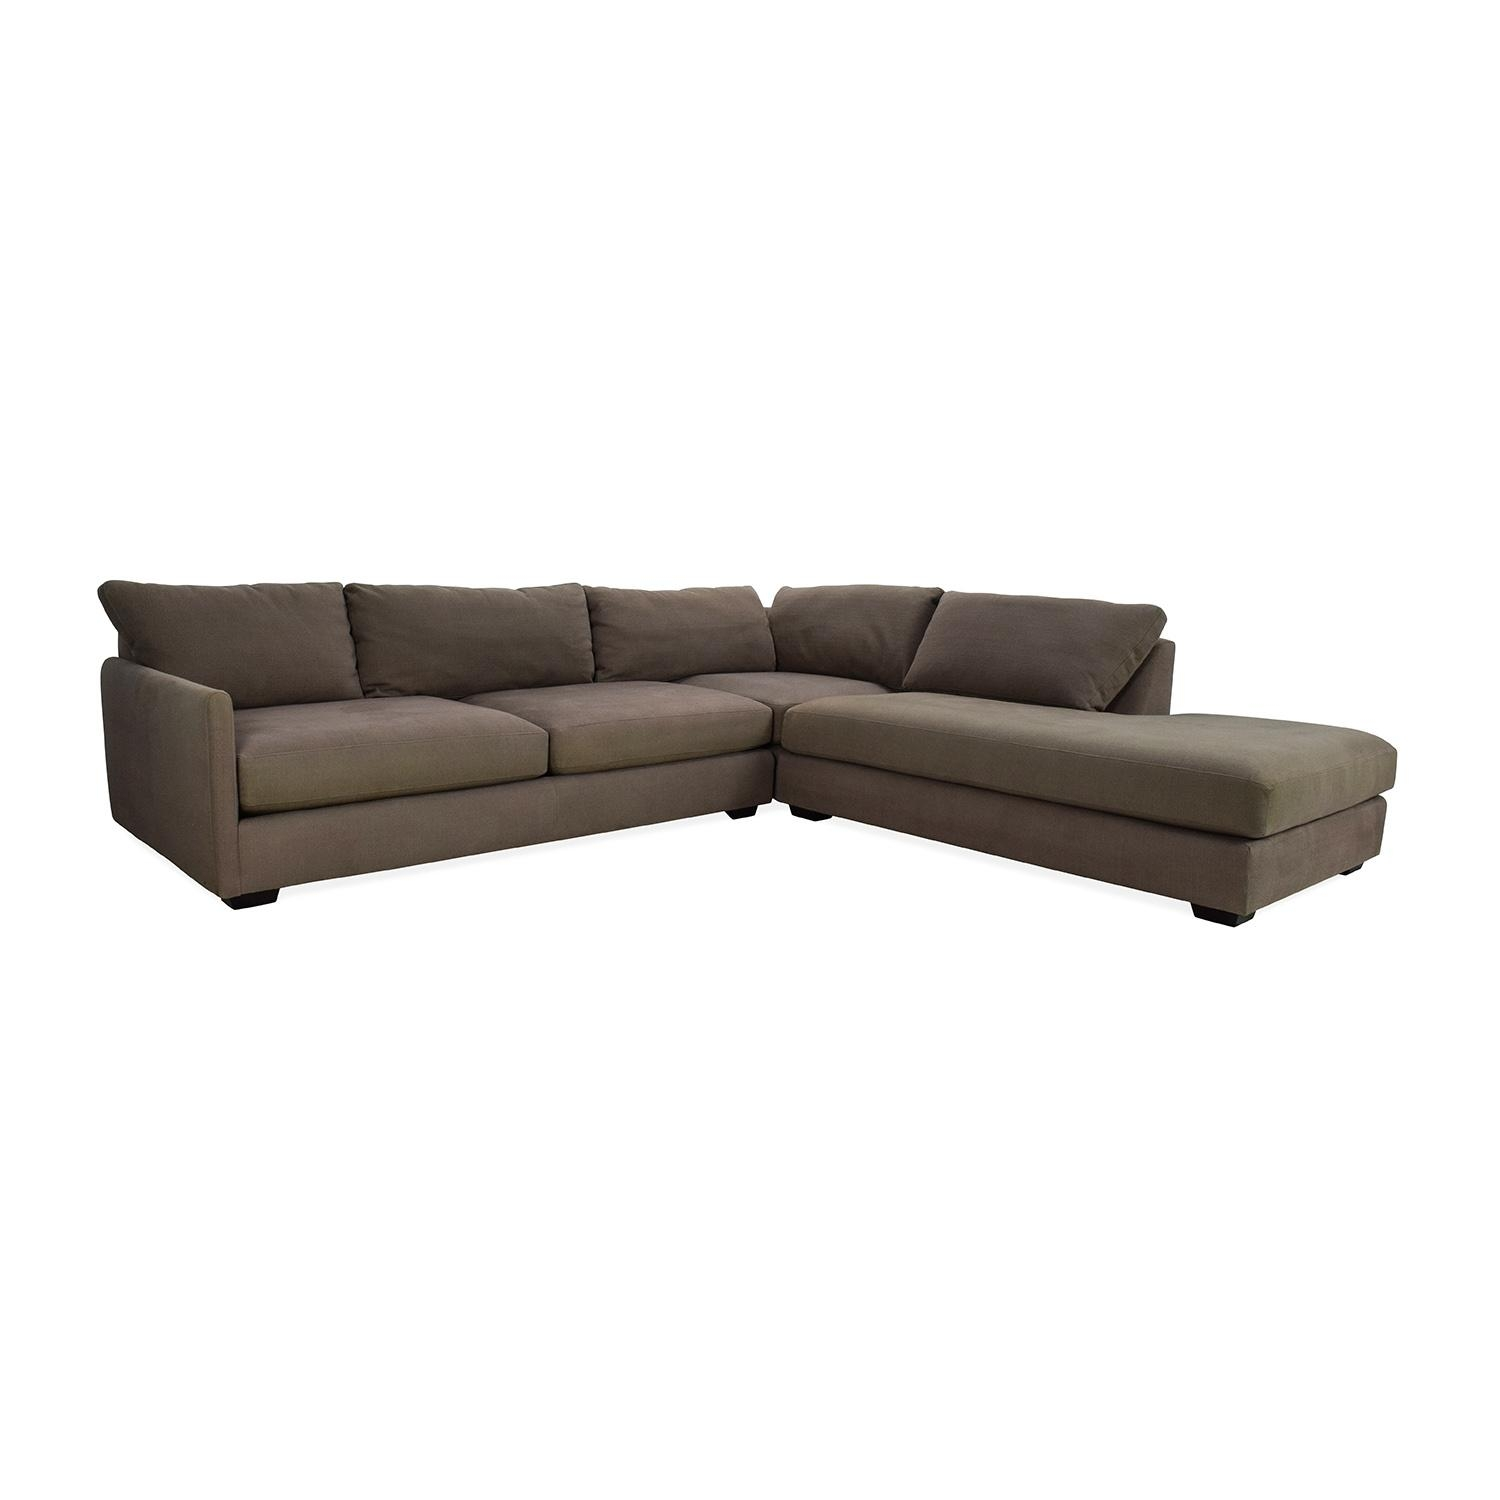 82% Off – Crate And Barrel Crate & Barrel Domino Sectional Sofa With Regard To Sectional Crate And Barrel (Image 6 of 20)